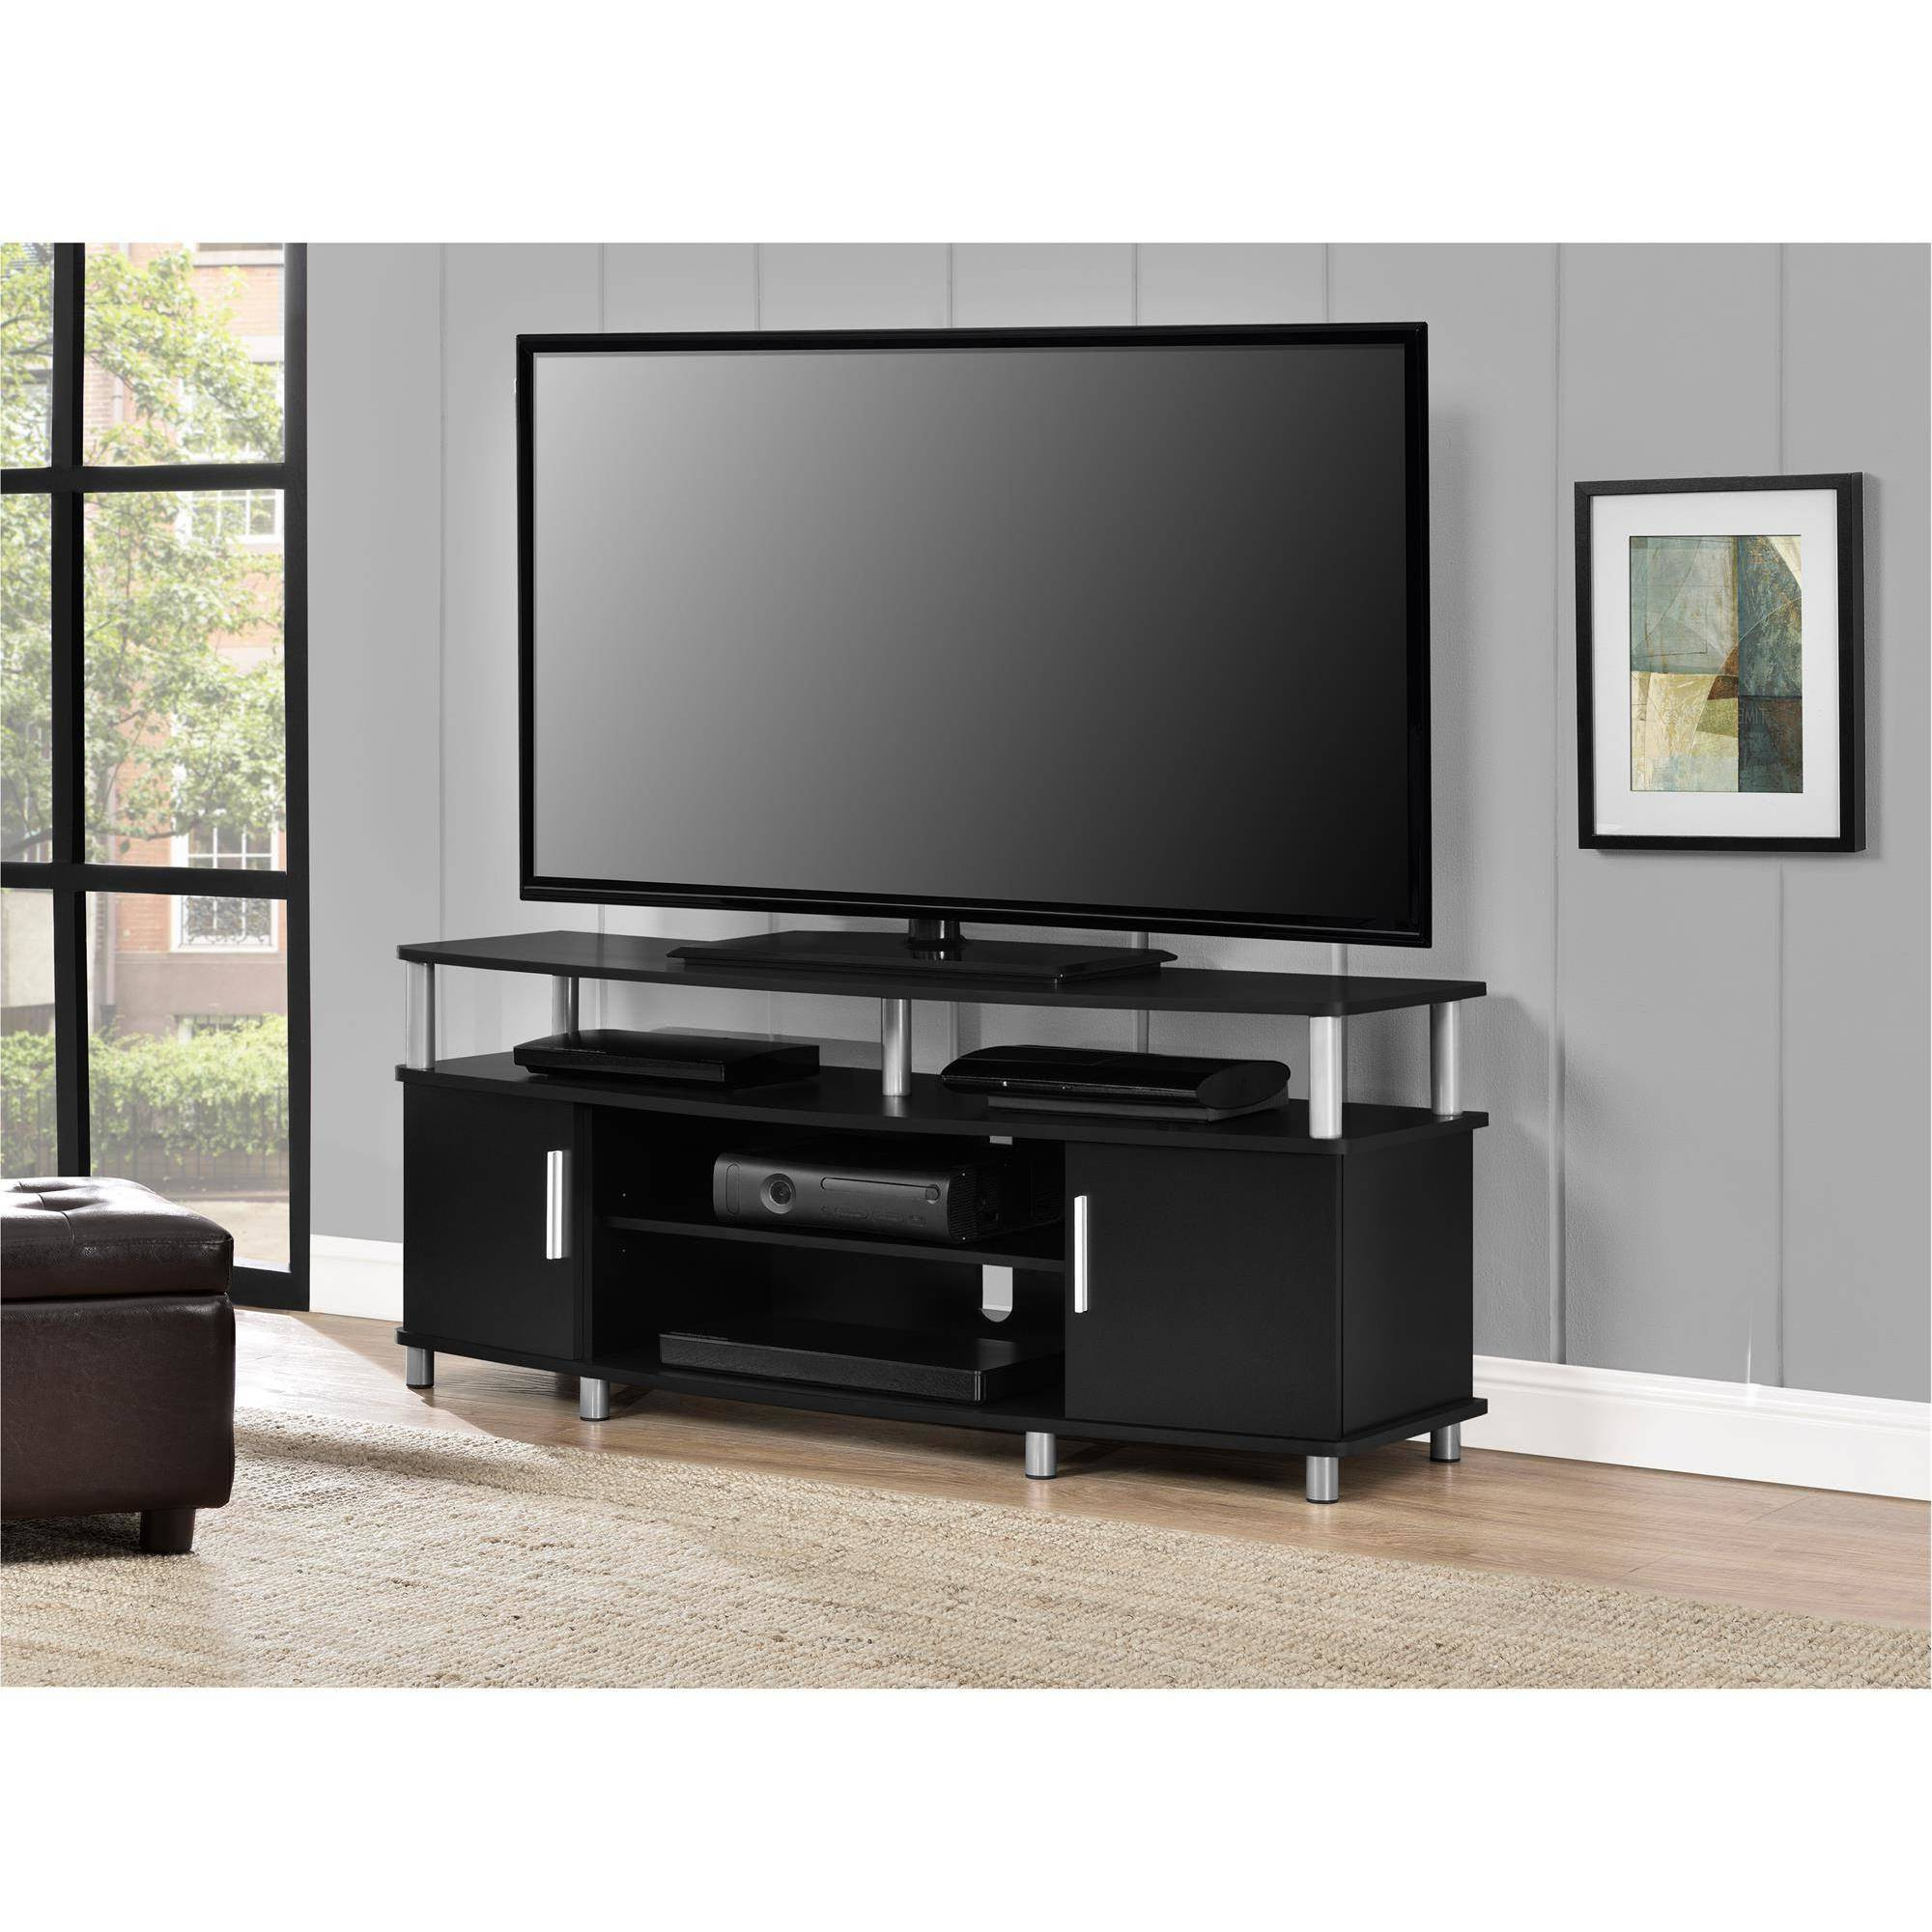 """Well Liked Bromley Black Wide Tv Stands Within Carson Tv Stand For Tvs Up To 50"""" Wide, Black – Walmart (View 5 of 10)"""